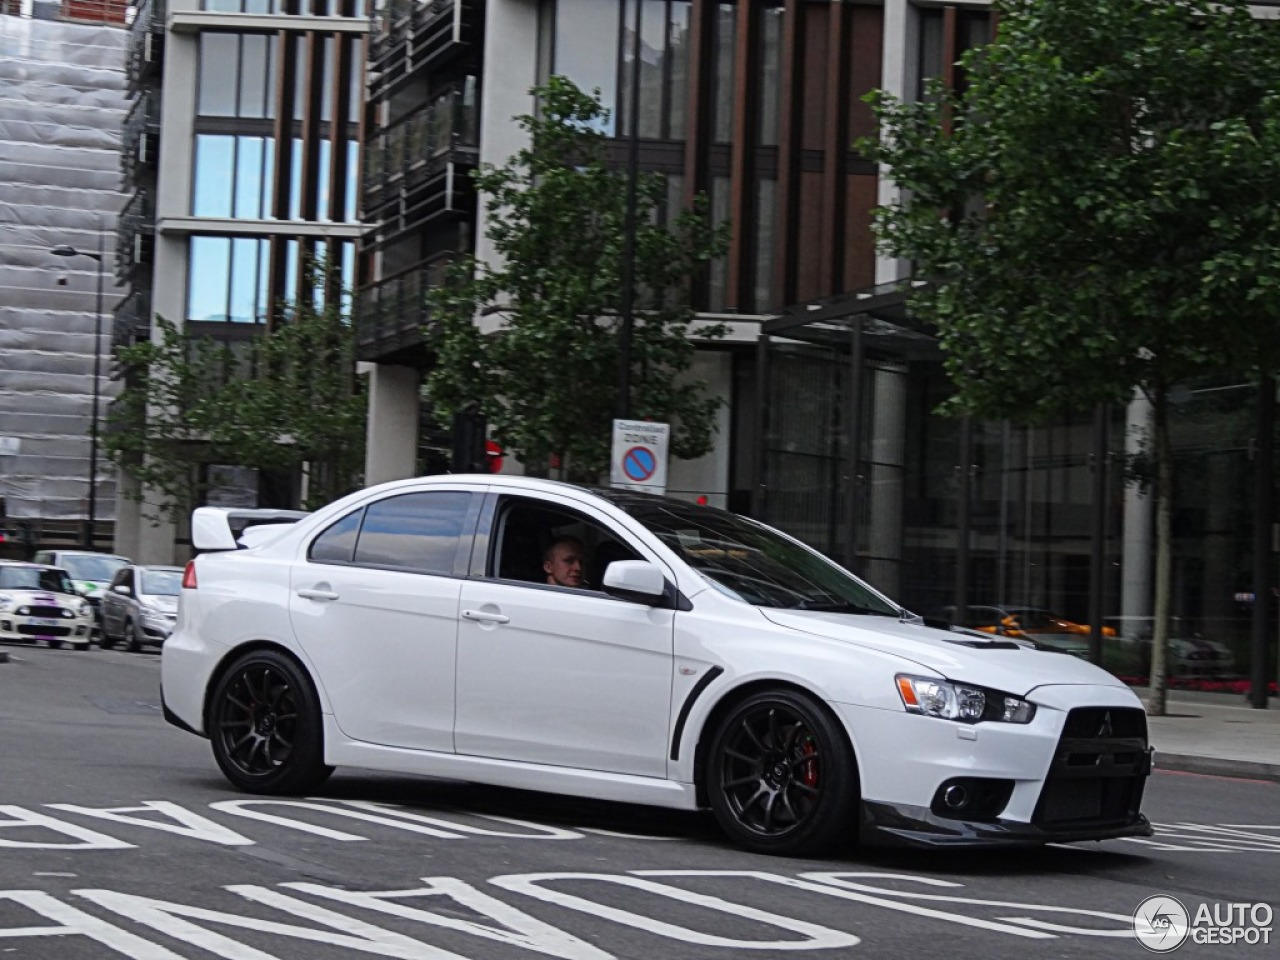 mitsubishi lancer evolution x gsr fq 300 19 august 2013 autogespot. Black Bedroom Furniture Sets. Home Design Ideas